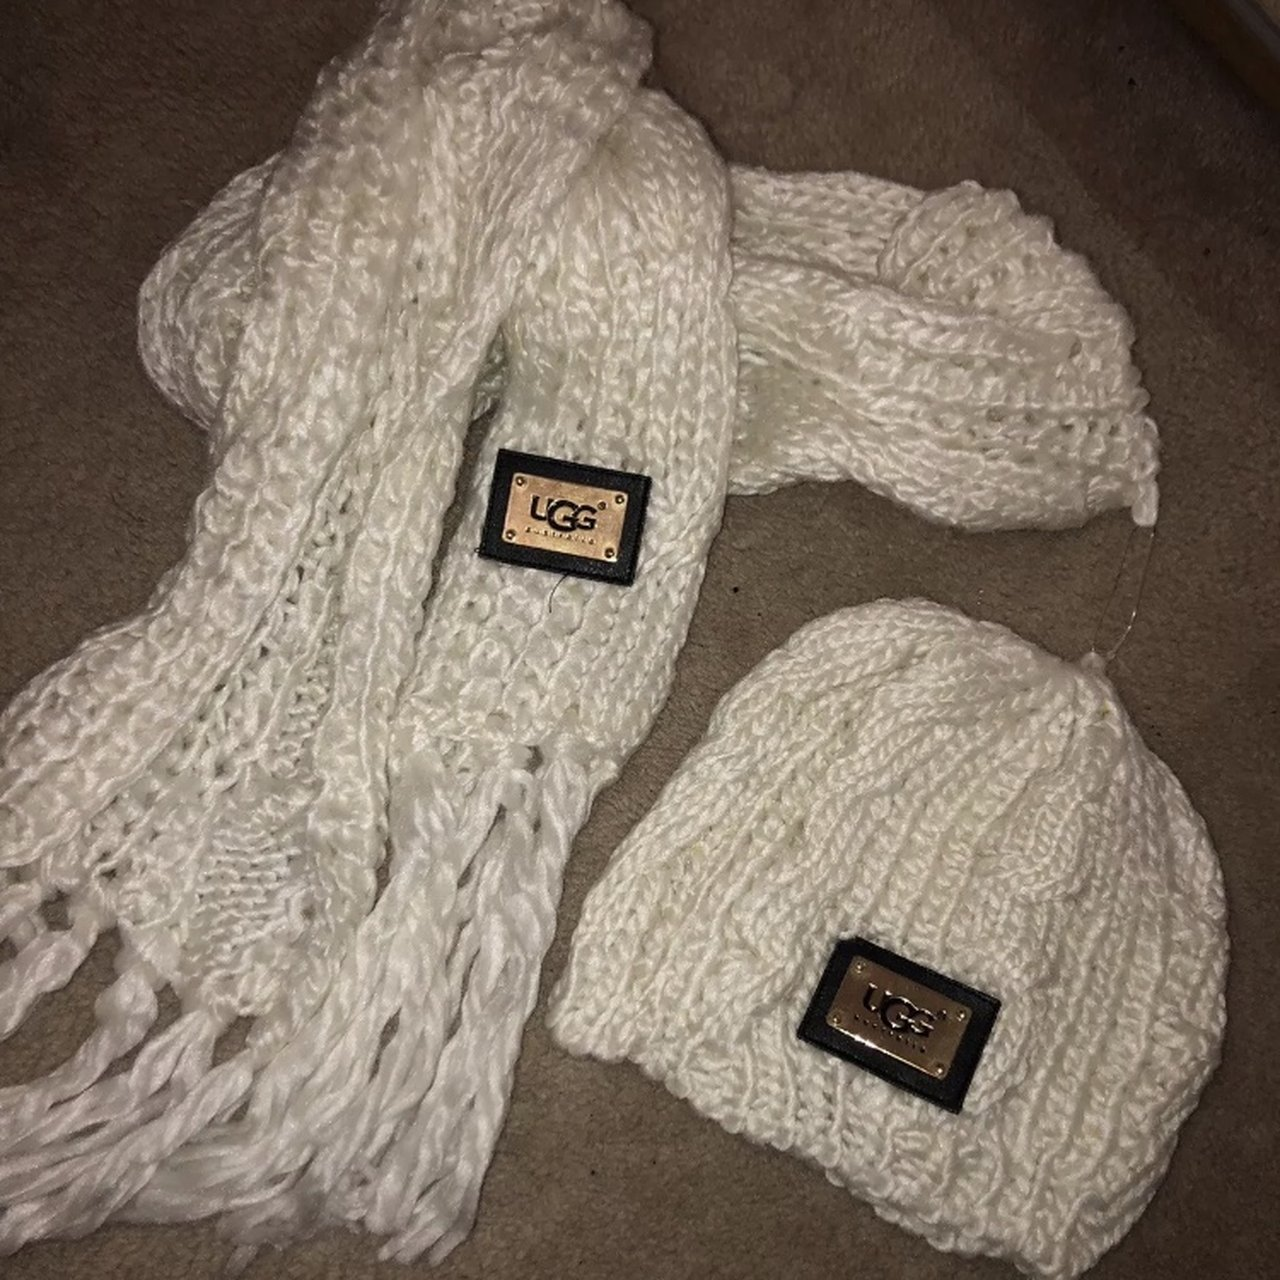 97908529e01 FAKE UGG cream hat   gloves. Never worn - Depop